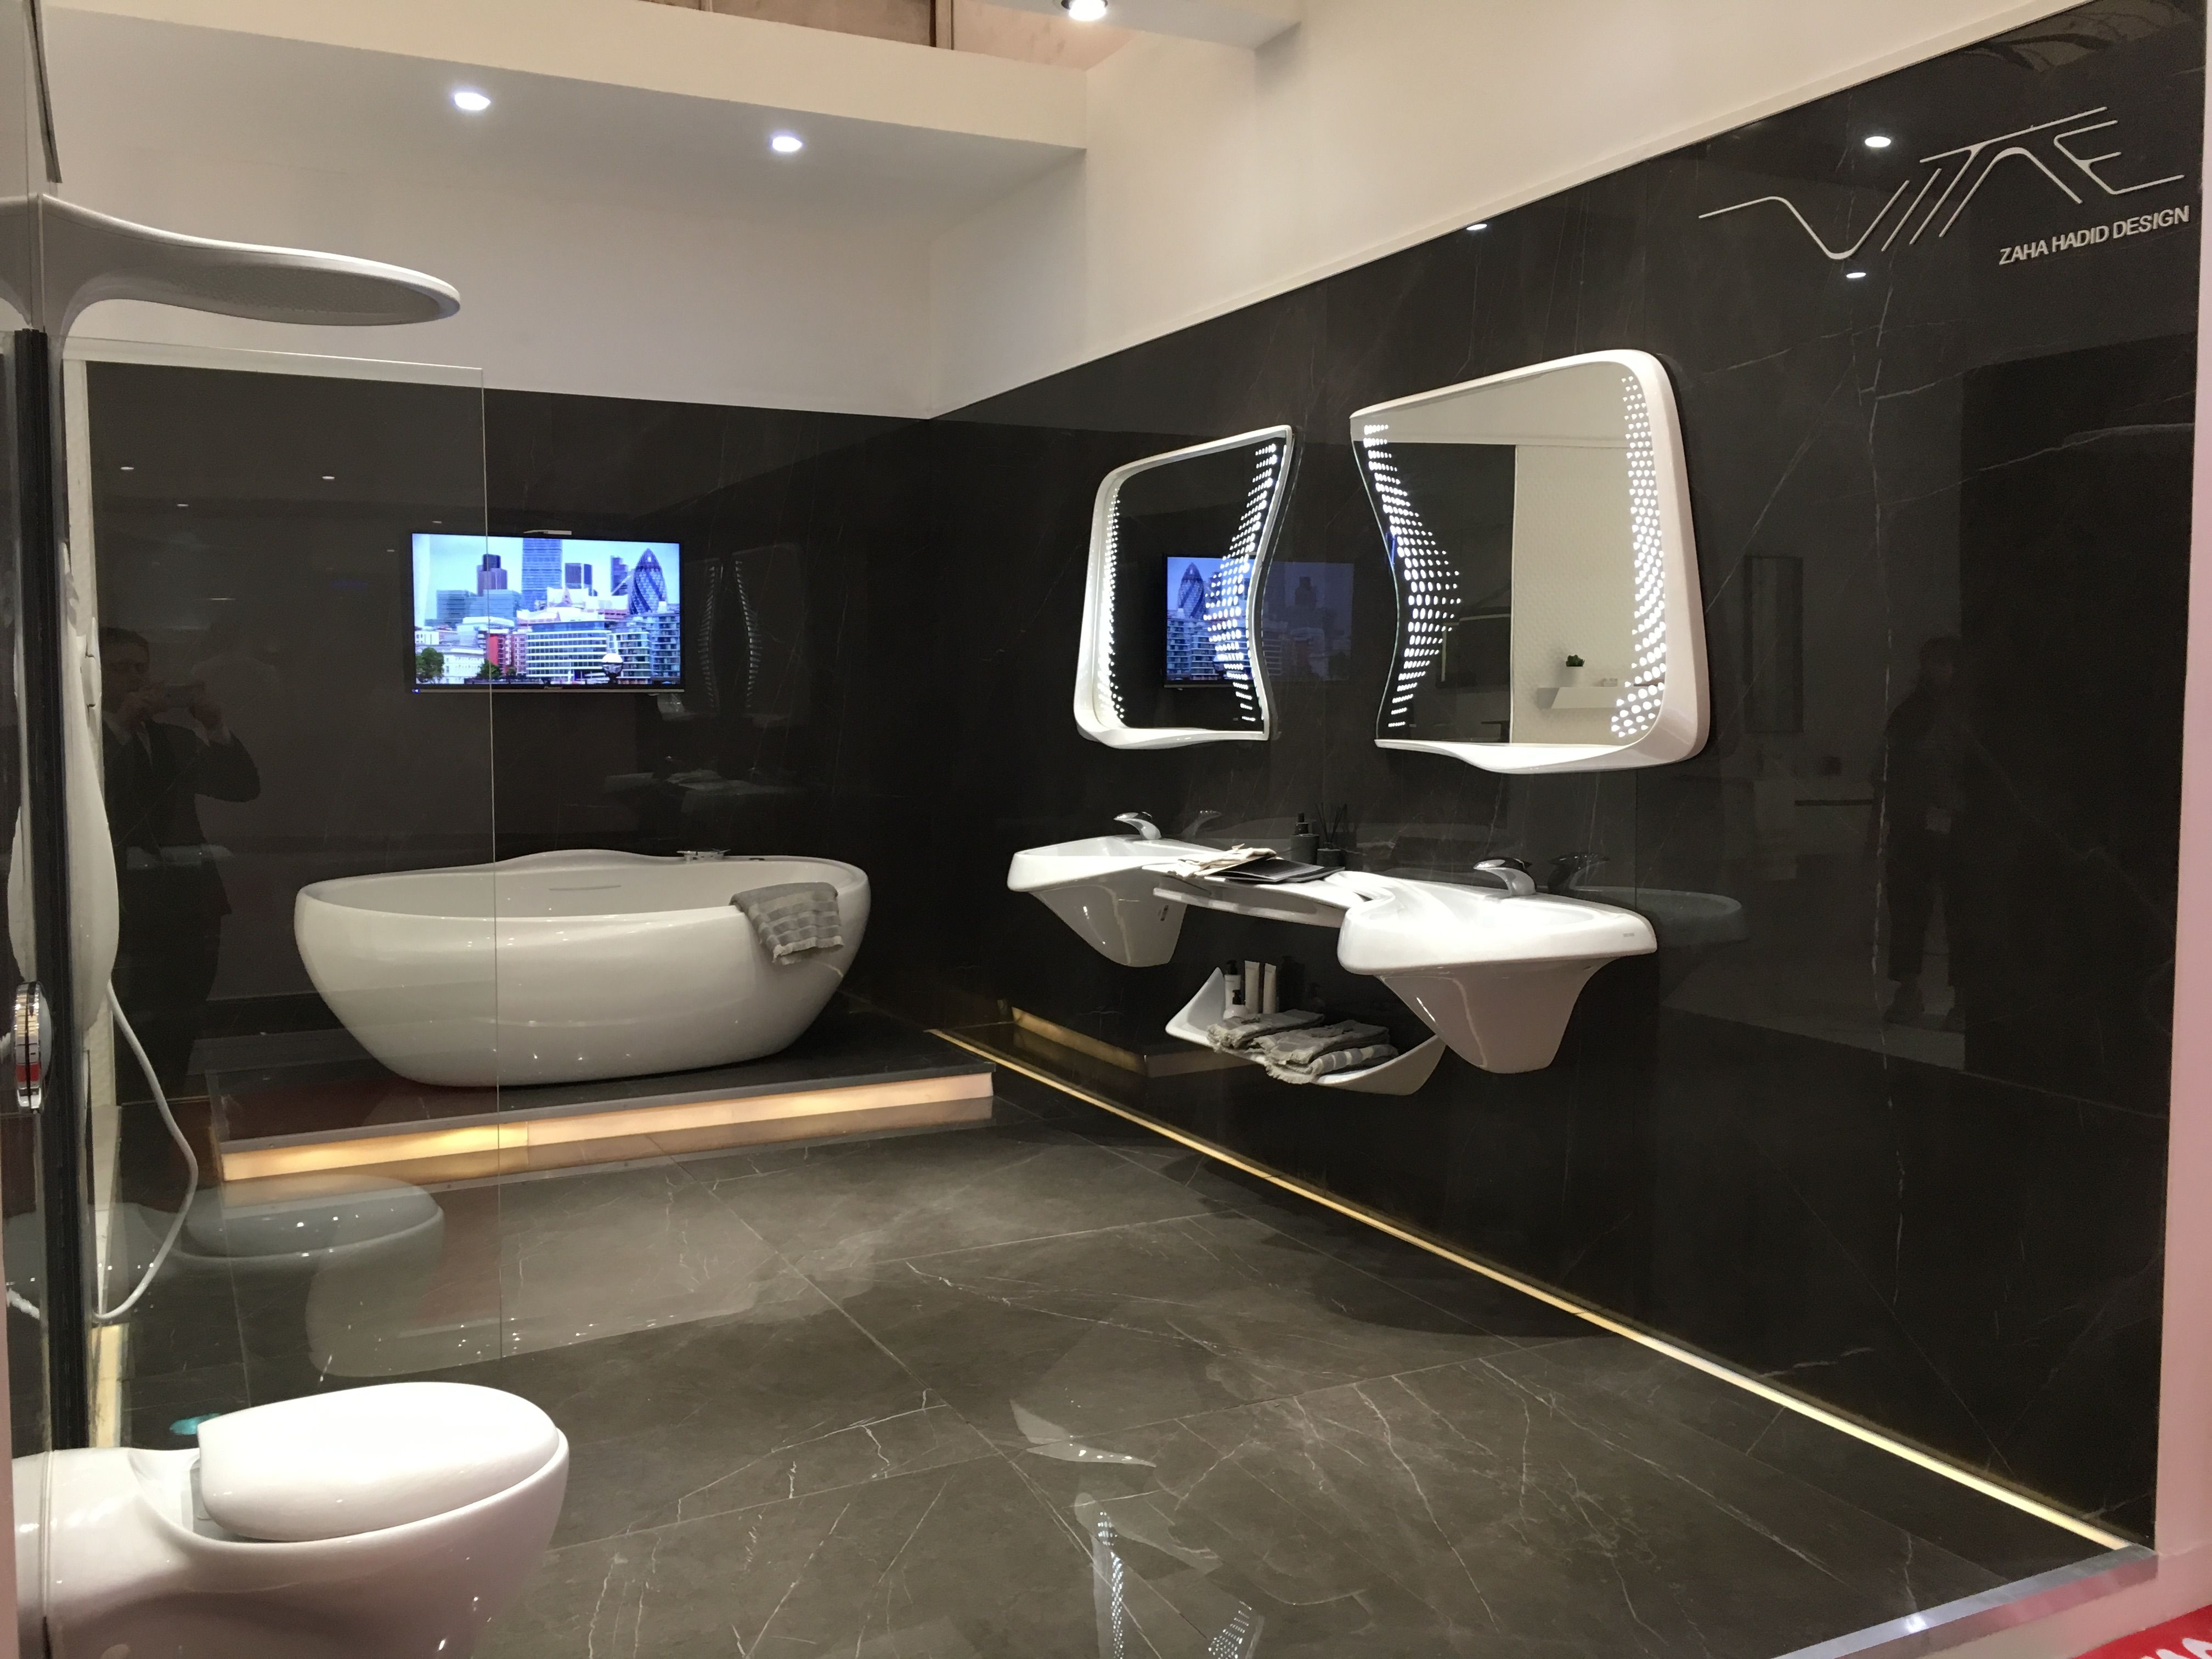 Cima Bagno ~ Kbc2017 day 2 we are still at kitchen & bath #china. showing the